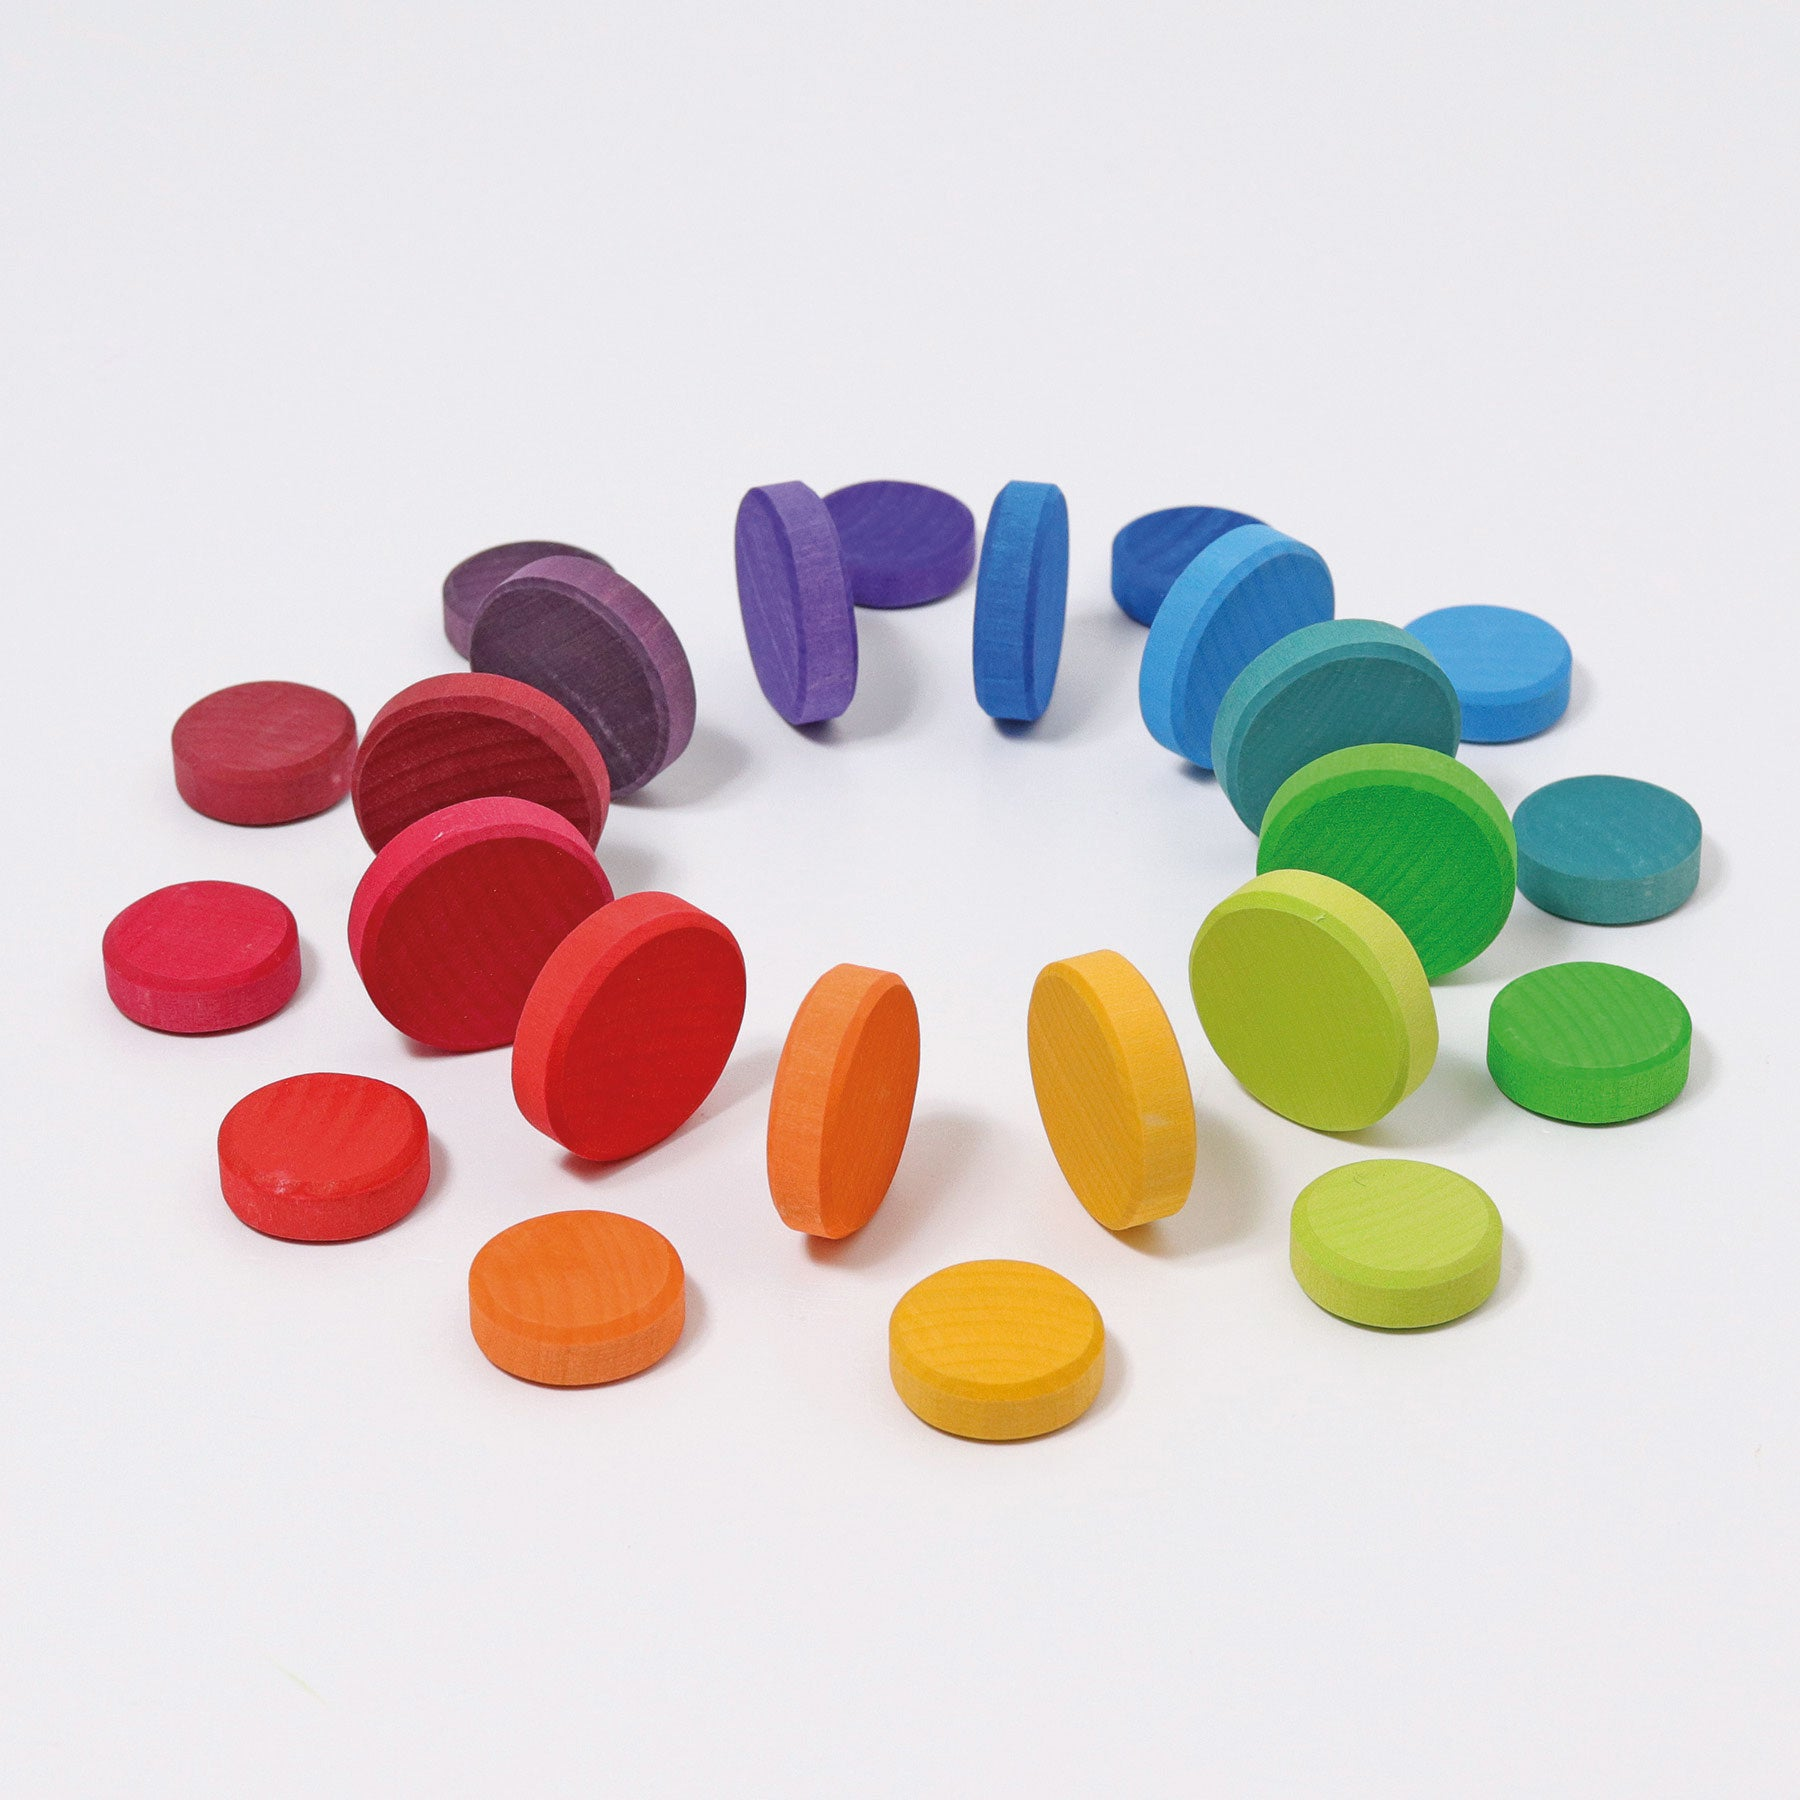 Grimm's Wooden Rainbow Coins - Bueno Blocks